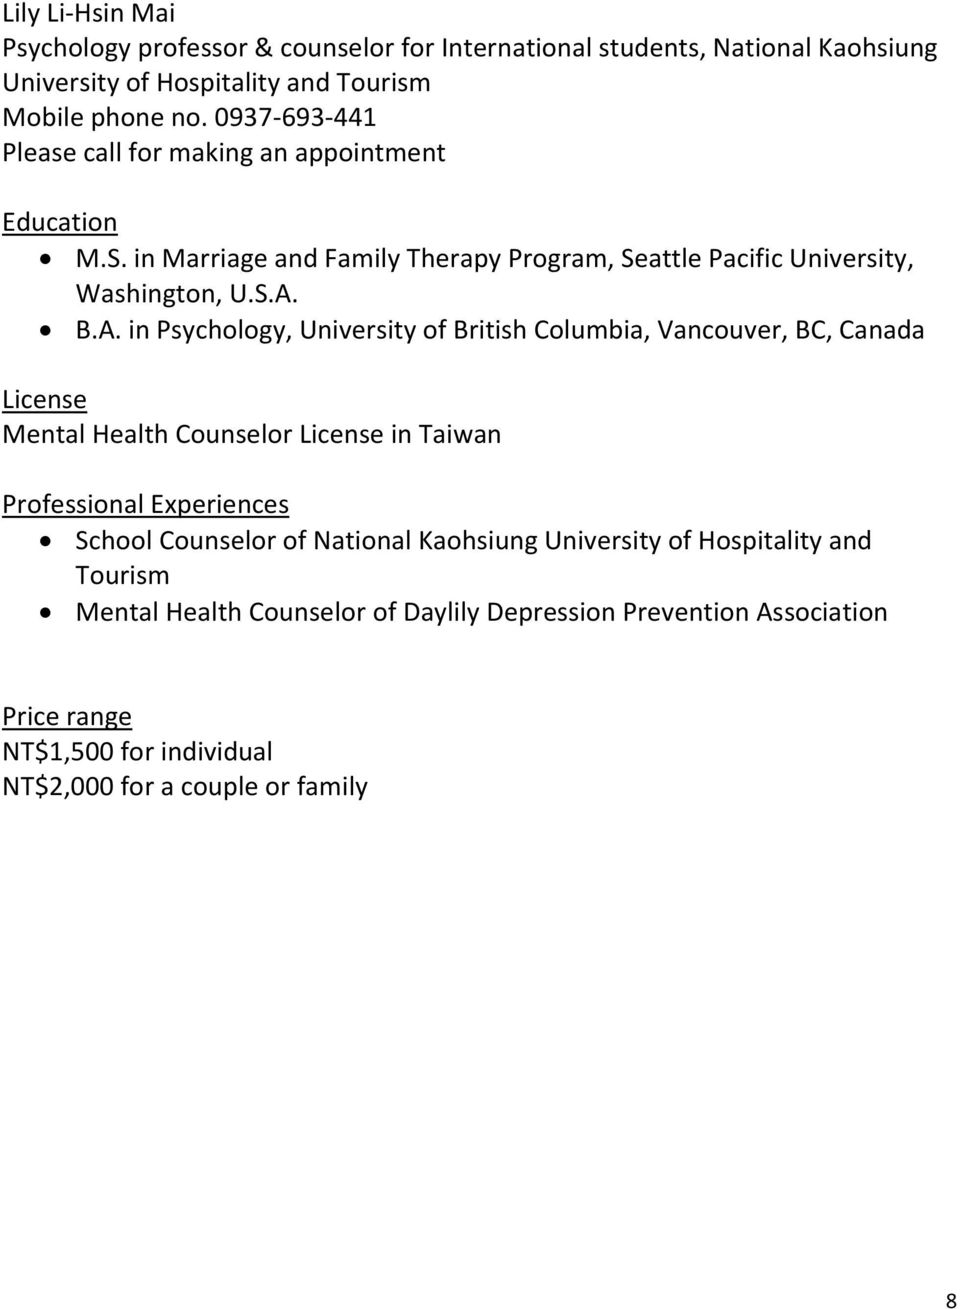 B.A. in Psychology, University of British Columbia, Vancouver, BC, Canada Mental Health Counselor in Taiwan School Counselor of National Kaohsiung